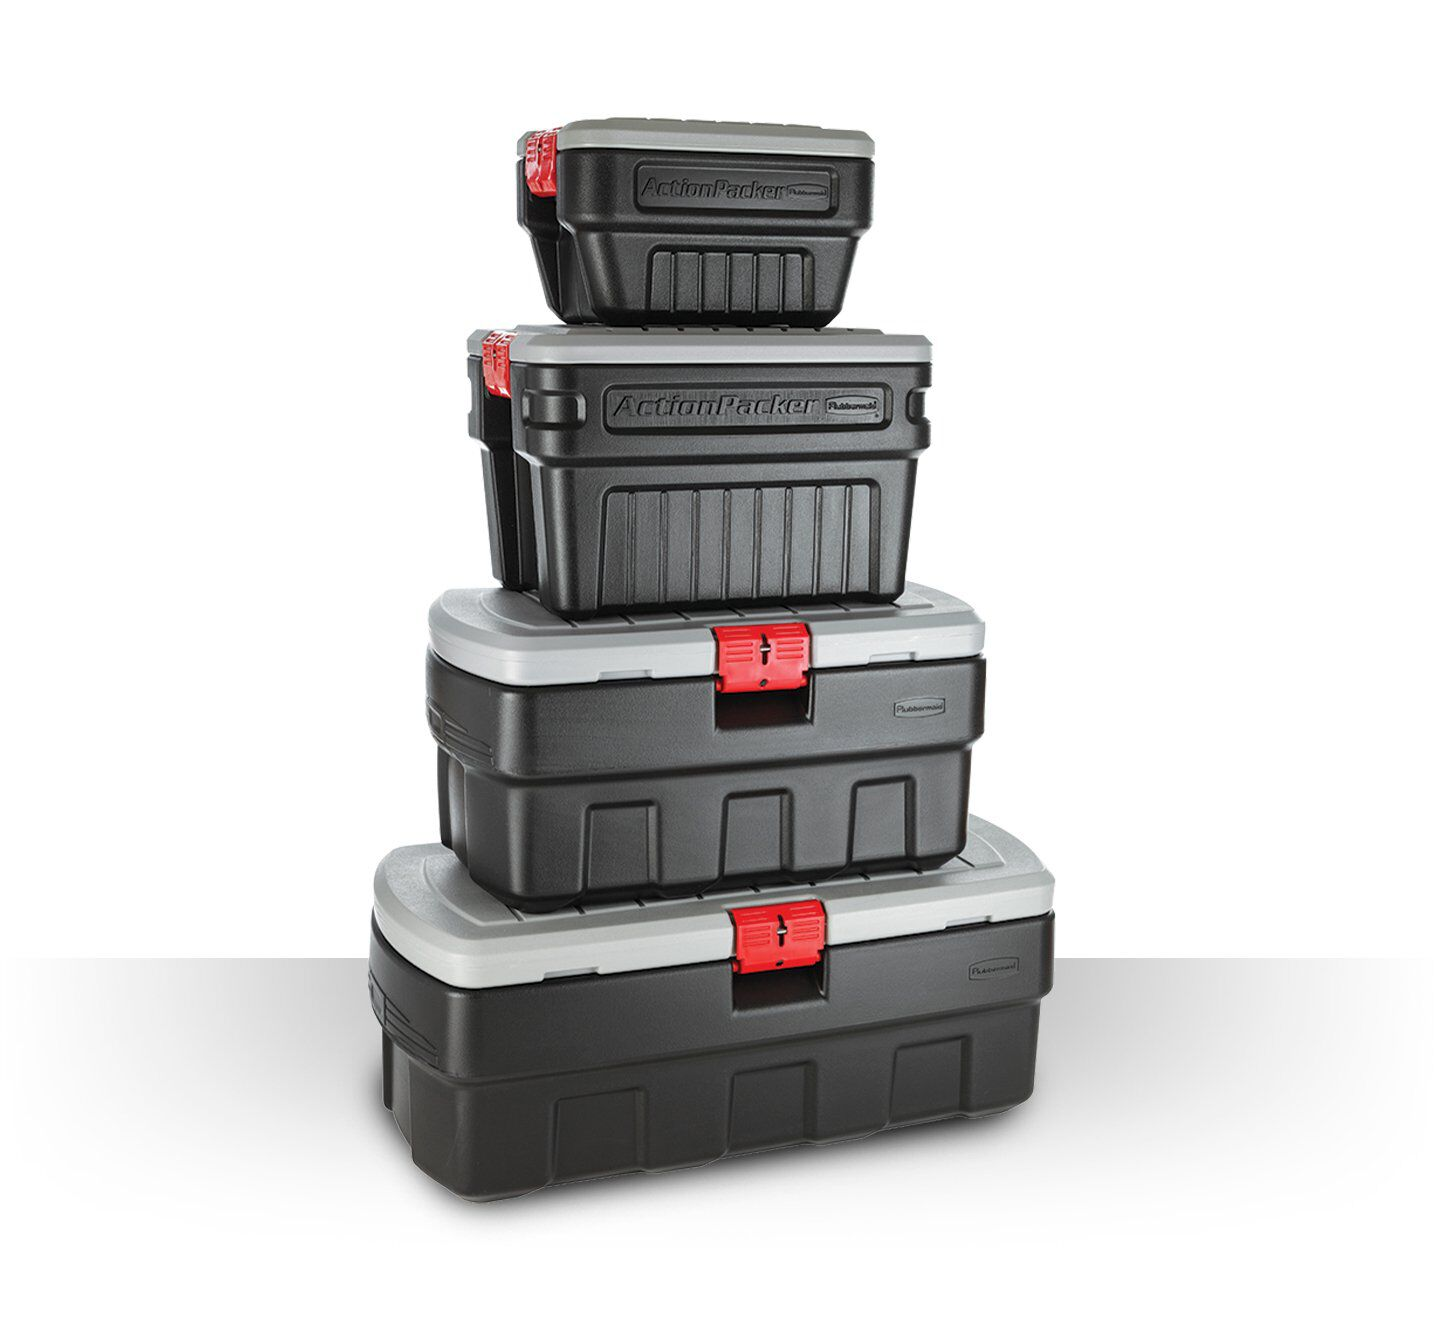 action packer storage container totes